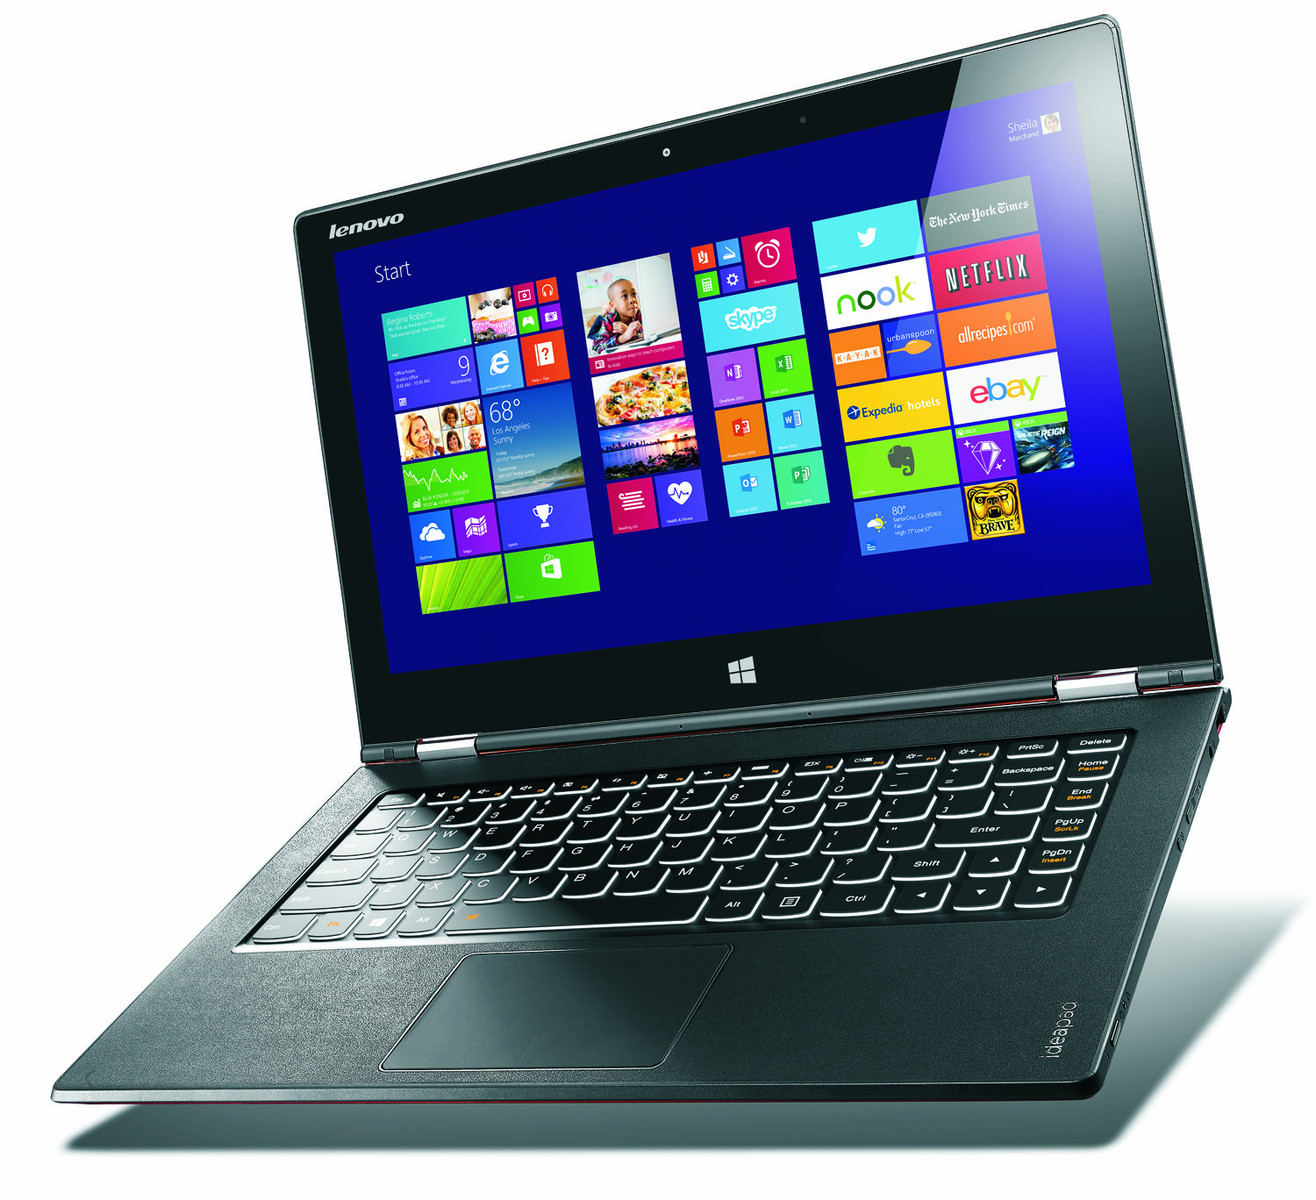 Notebook lenovo yoga 2 pro yoga series